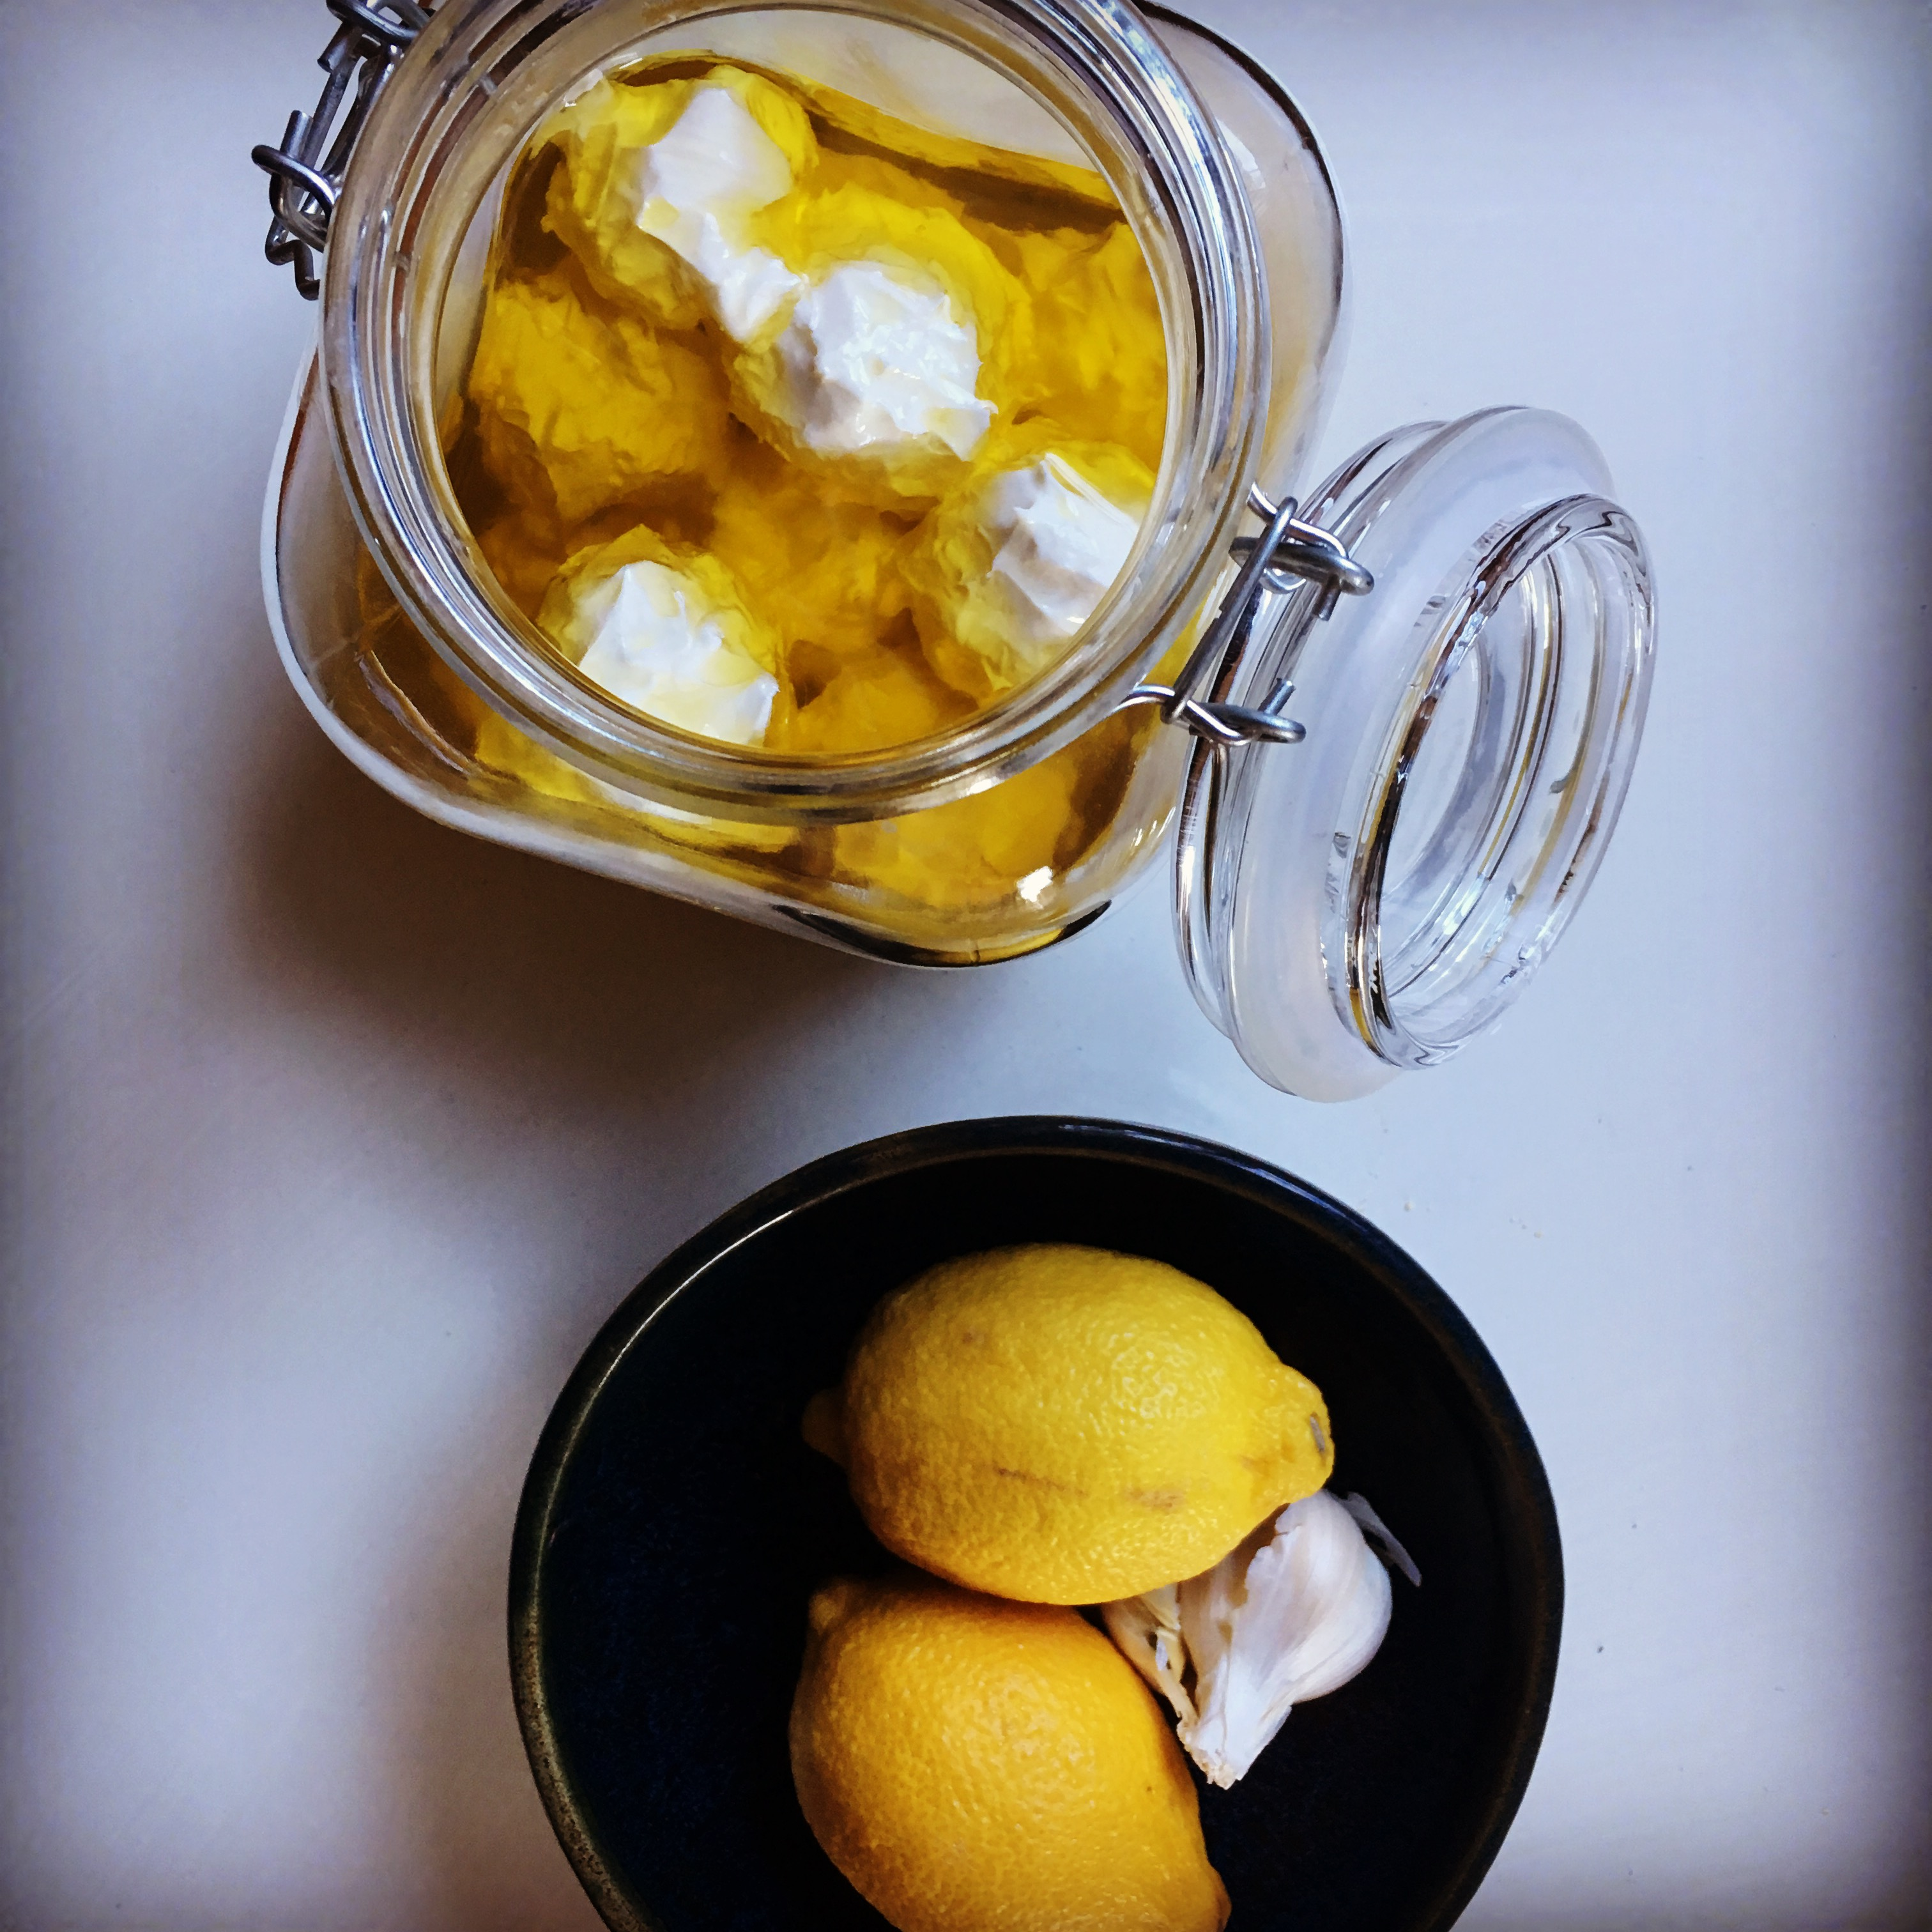 Labneh: Strained yogurt cheese